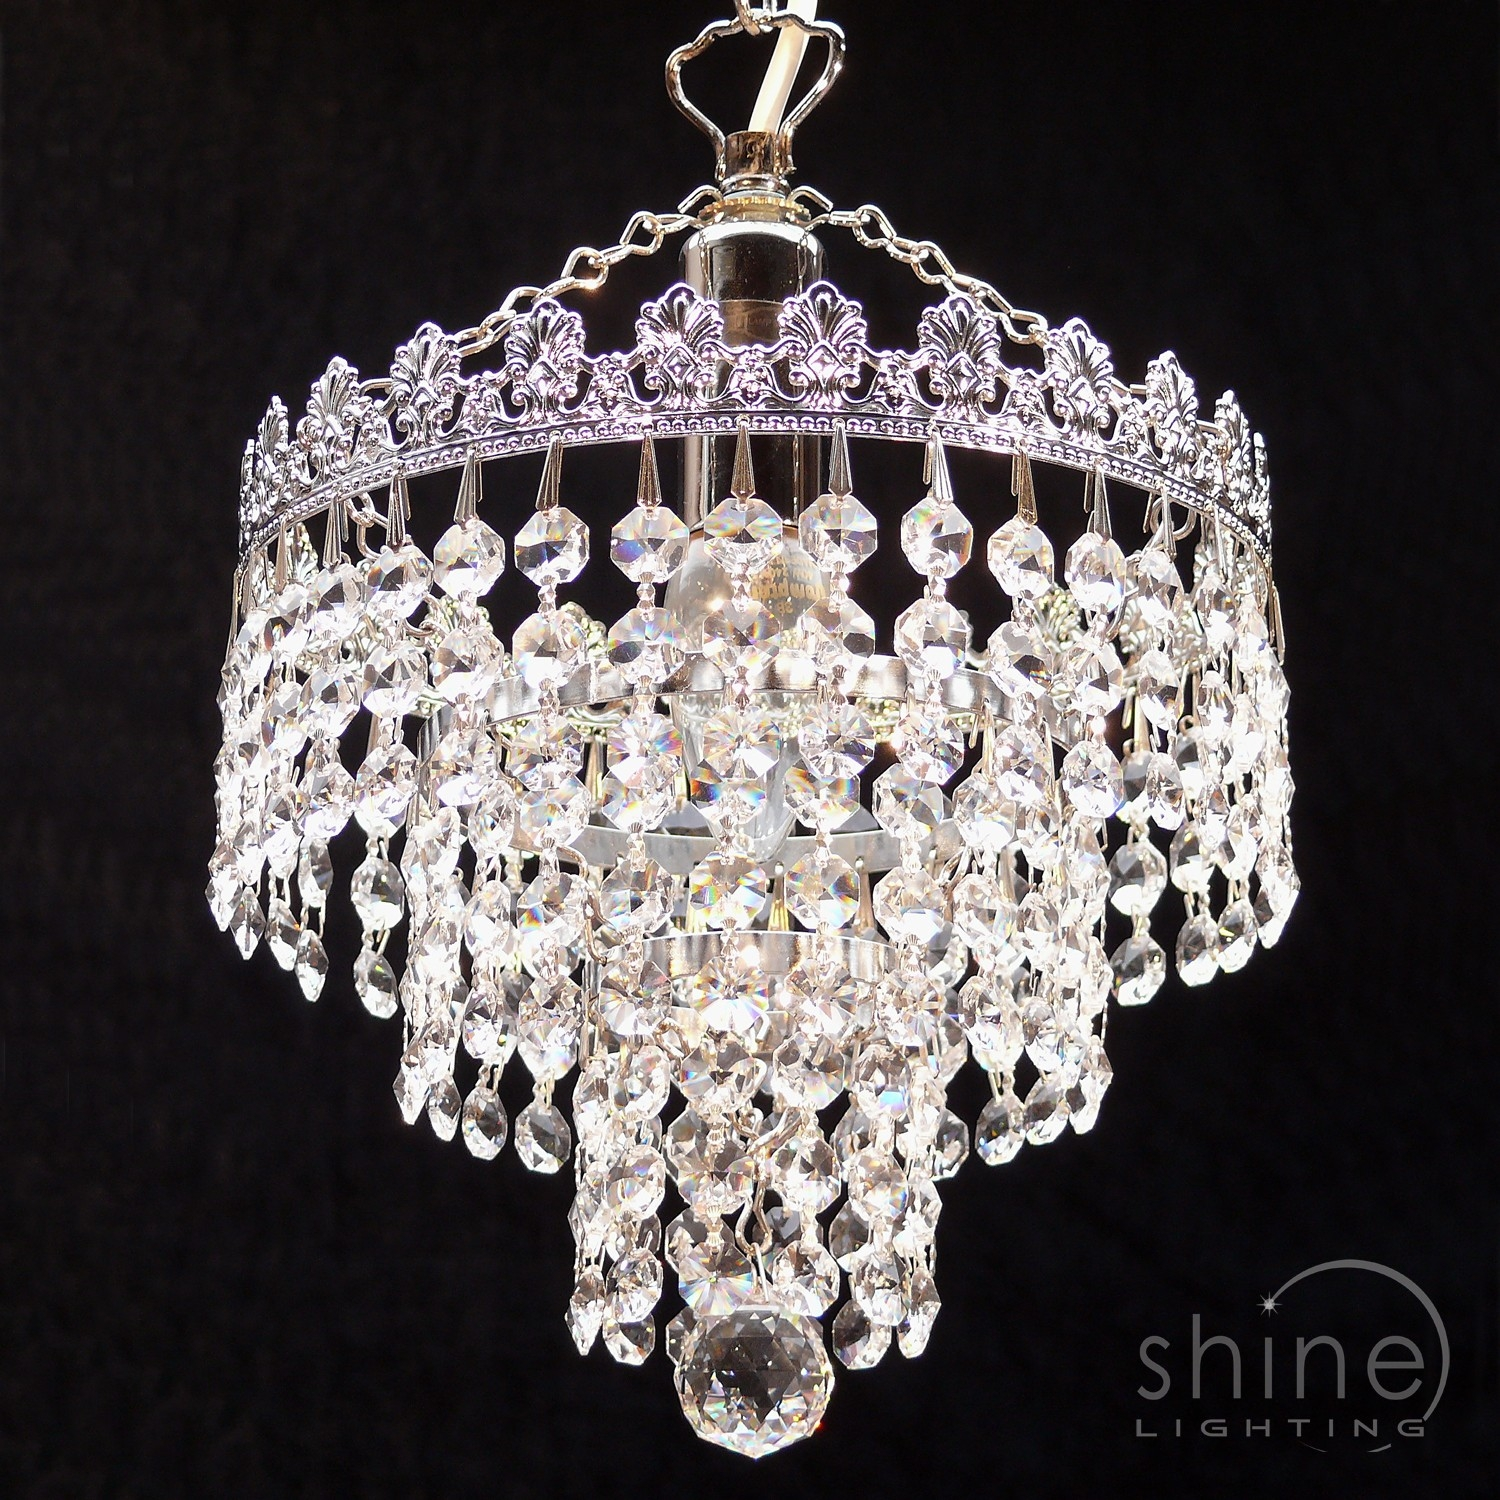 8 3 Tier Crystal Chandelier Within 3 Tier Crystal Chandelier (#2 of 12)